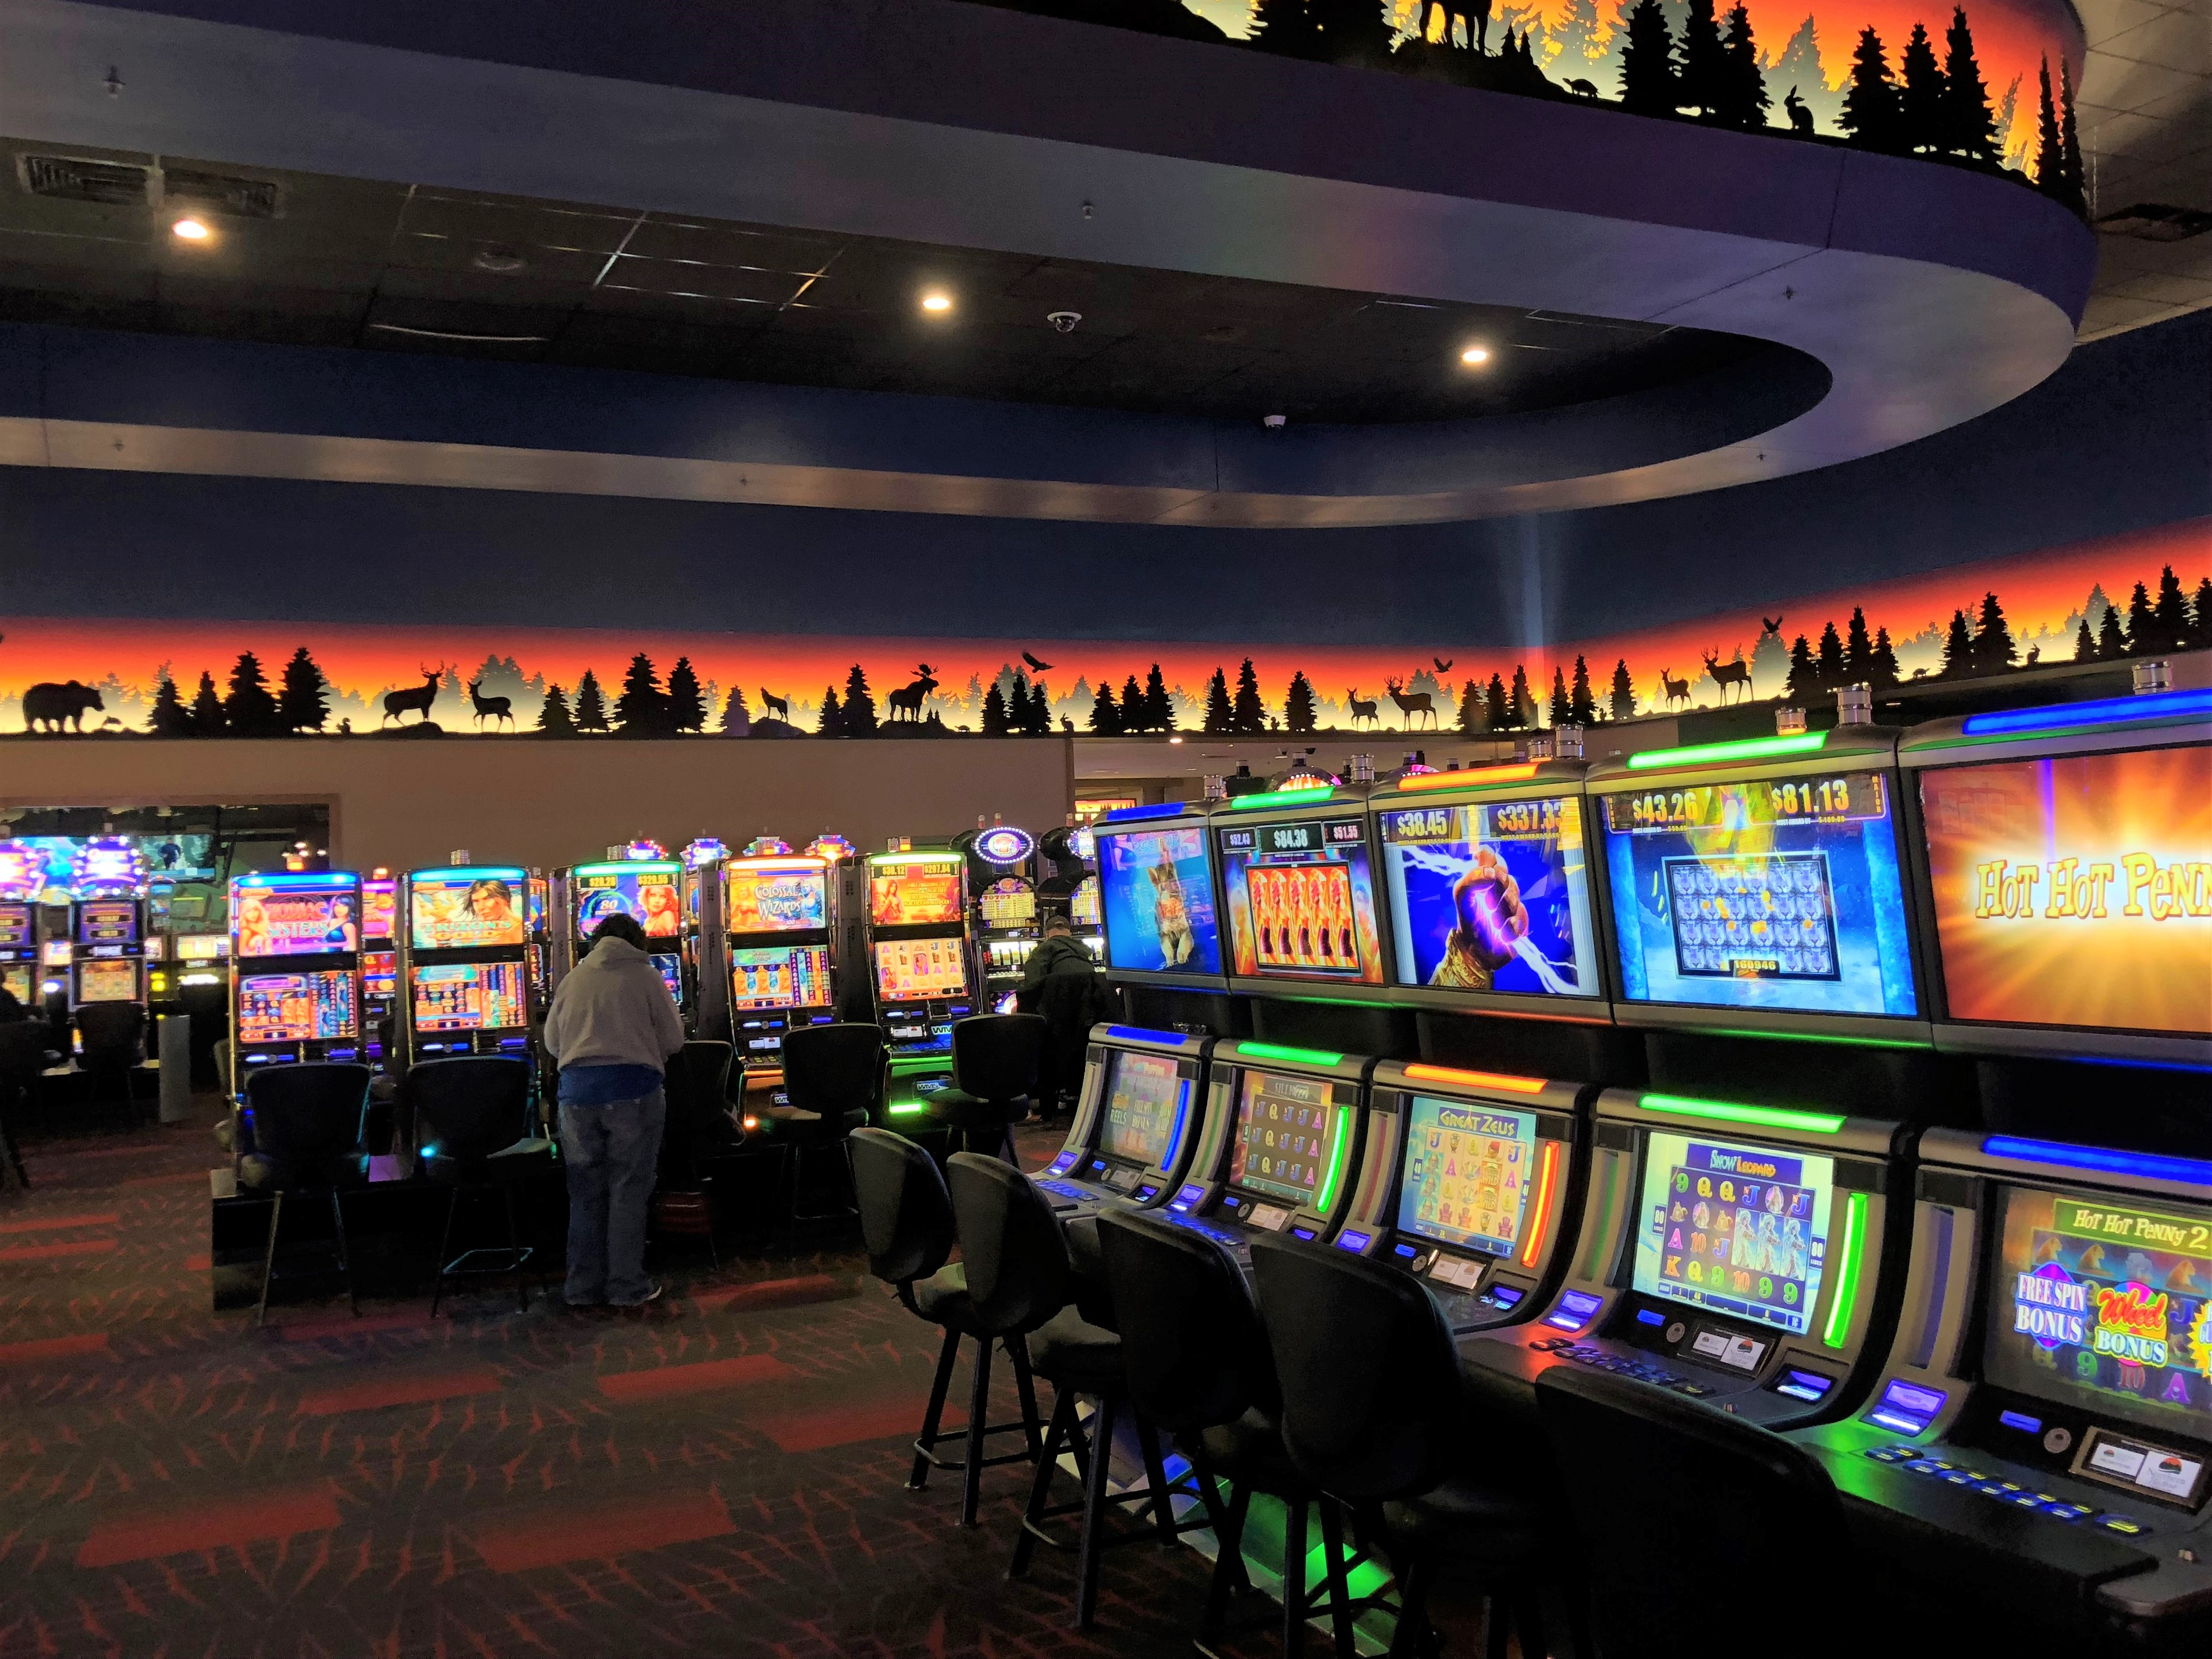 The Great Northern Casino